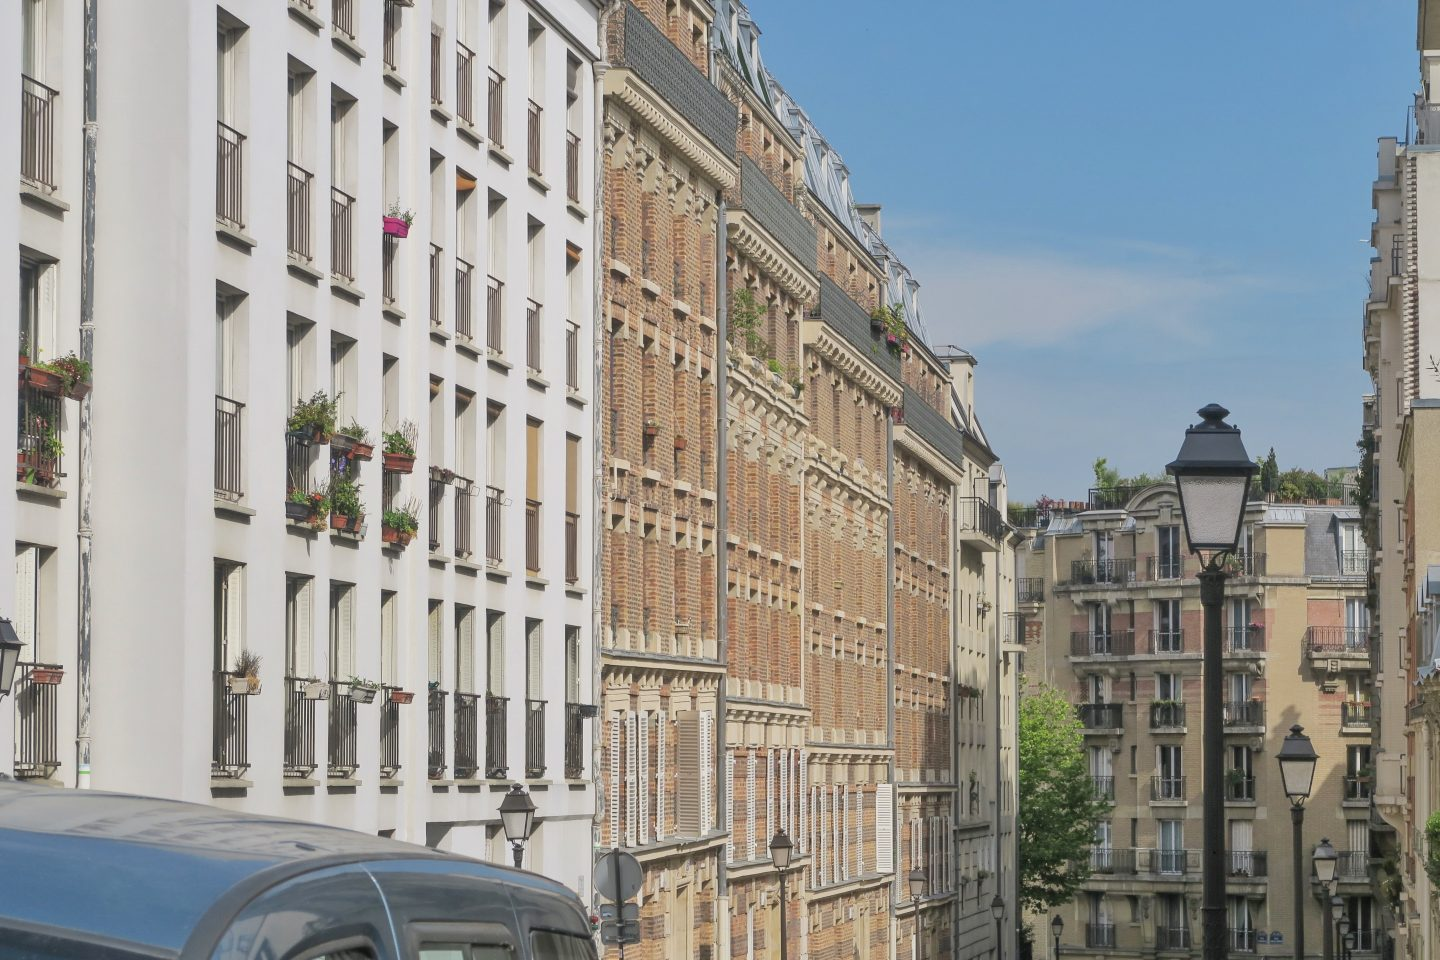 A row of Parisian houses on Monmarte in day trip to Paris on a budget on francescasophia.co.uk